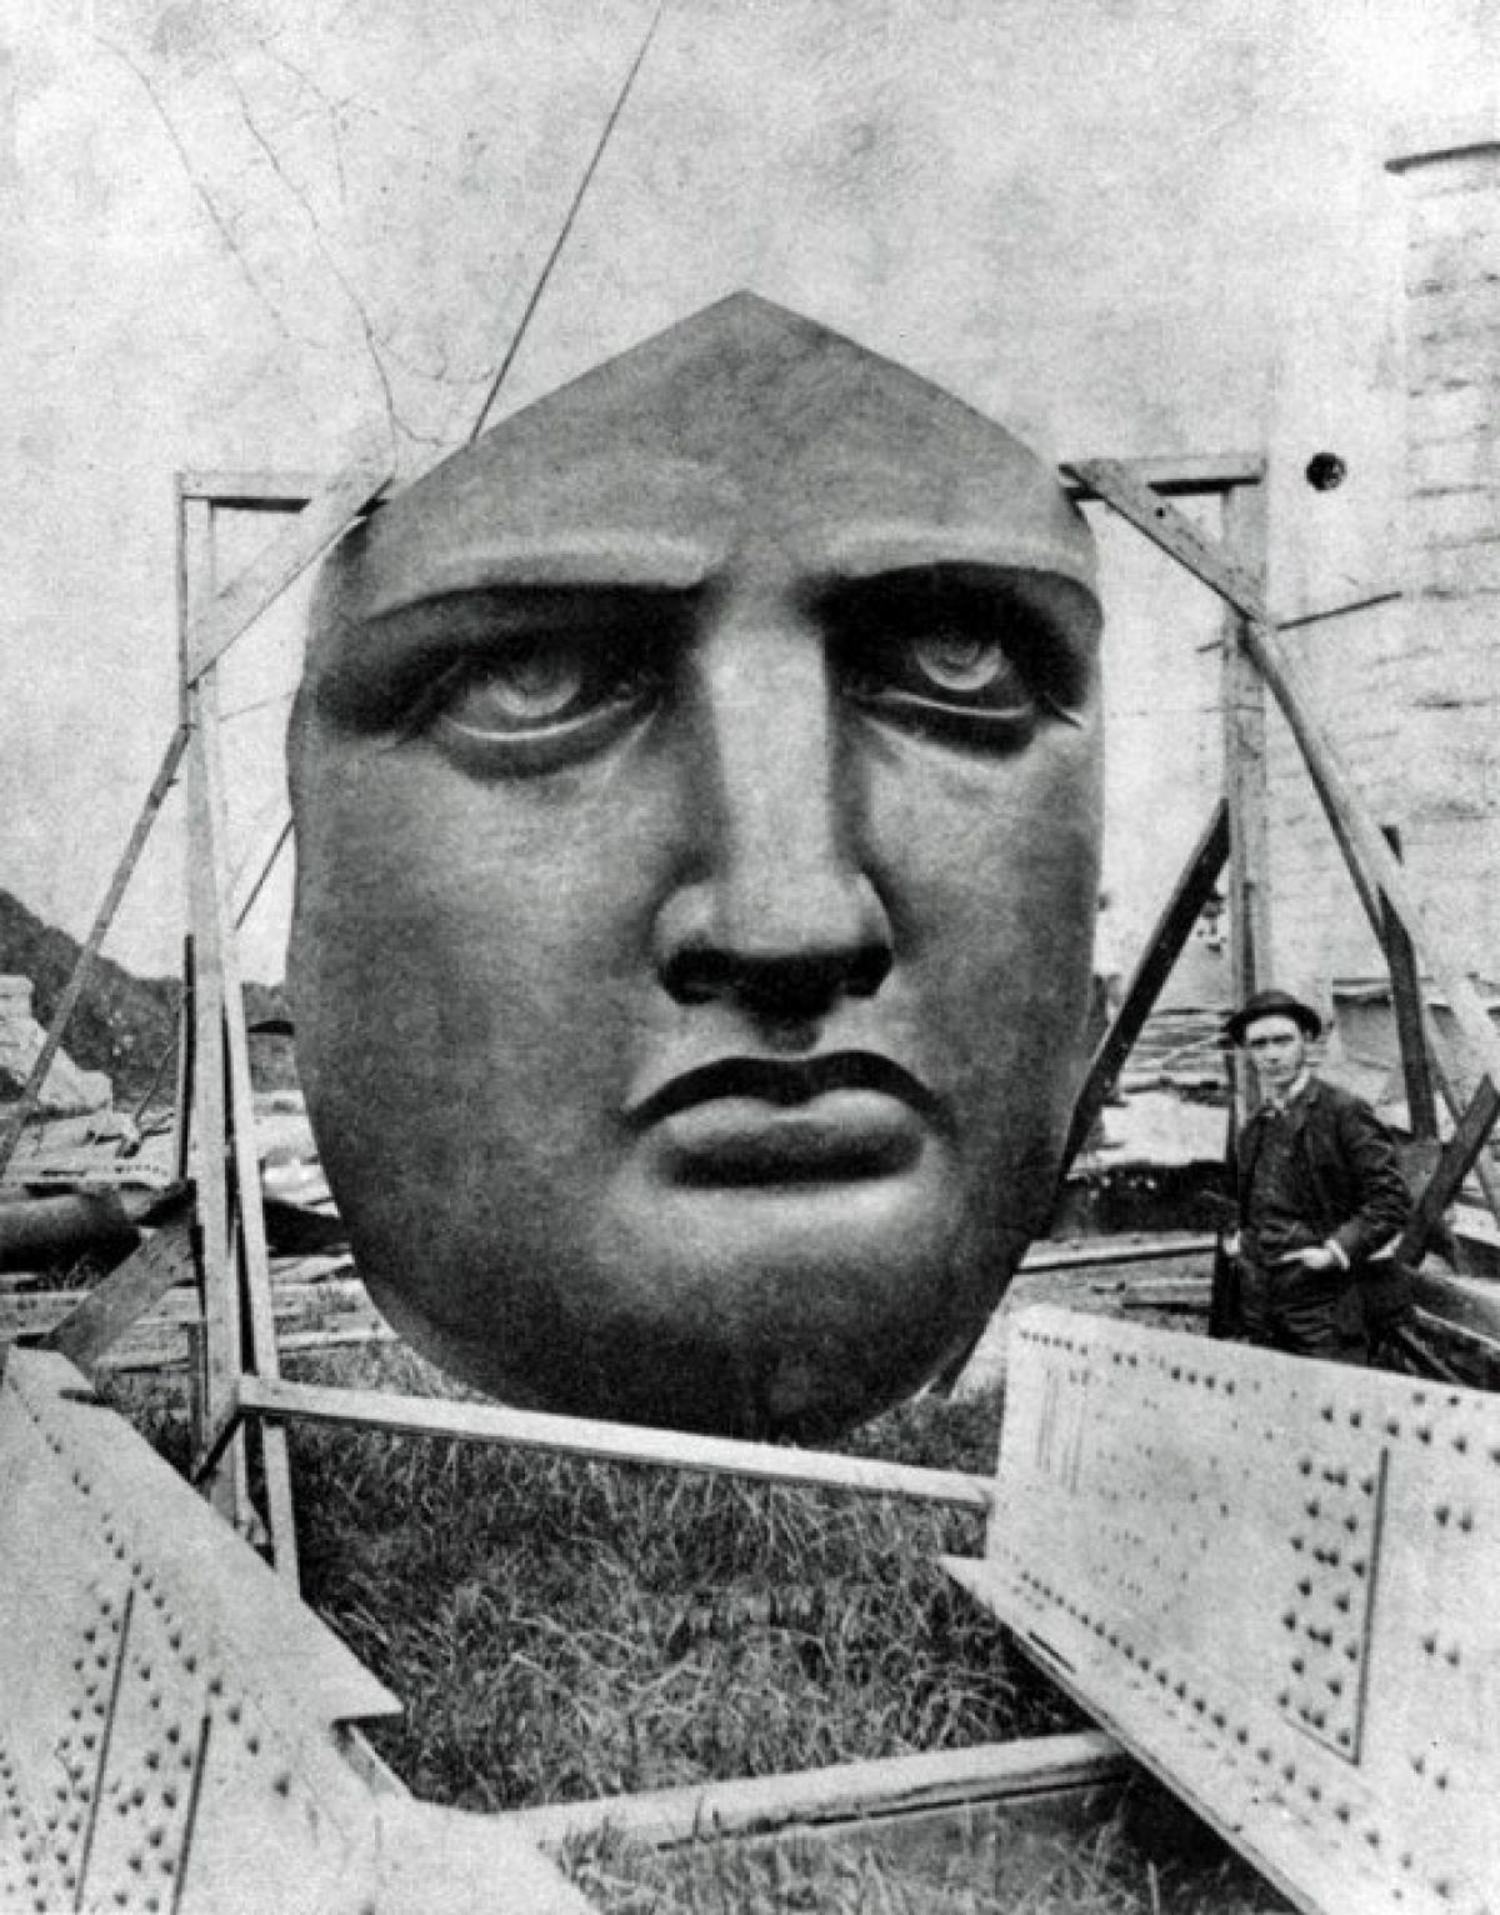 The Statue of Liberty's face before it was installed, 1886.